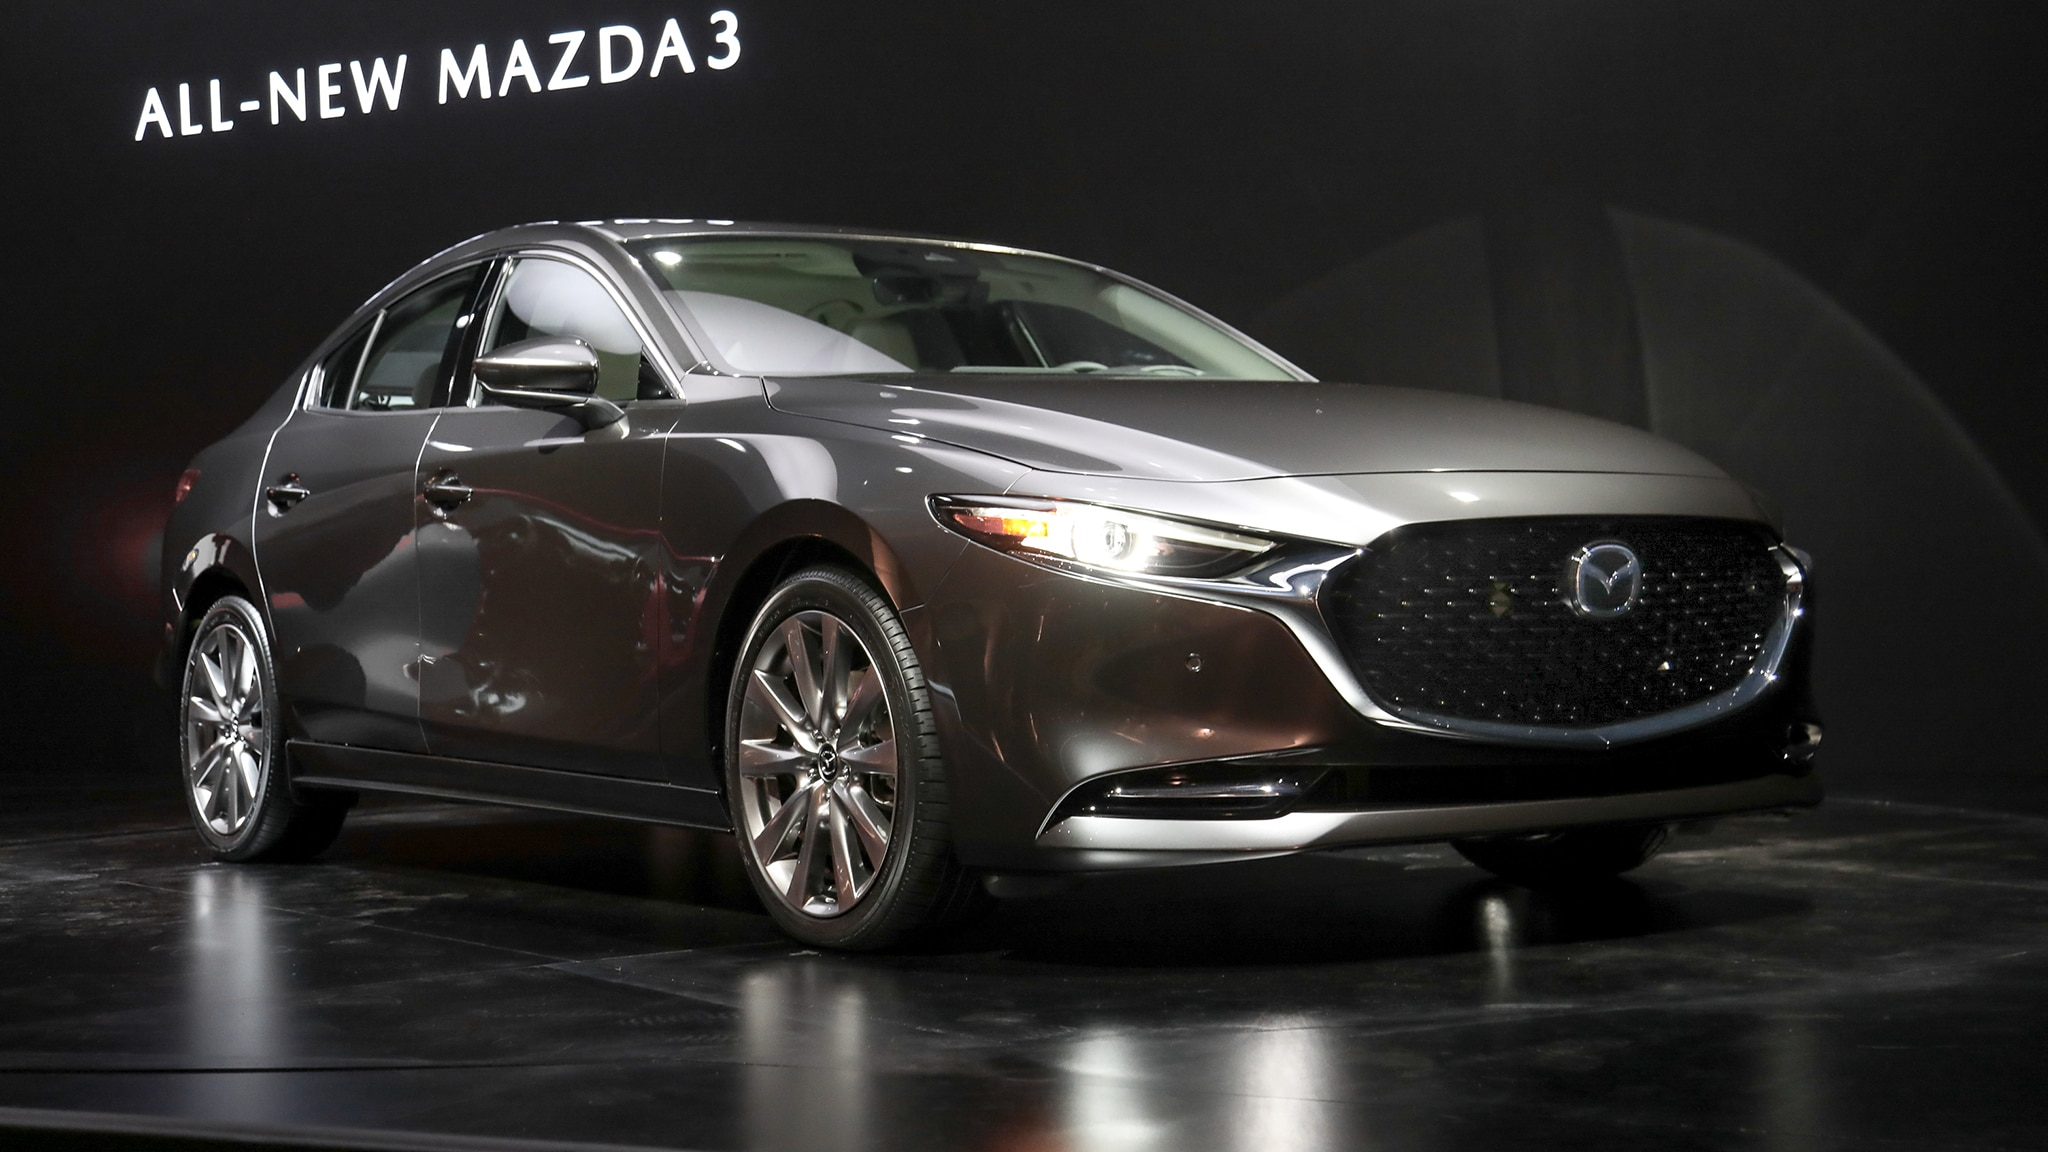 2019 mazda 3 arrives  here are the official details